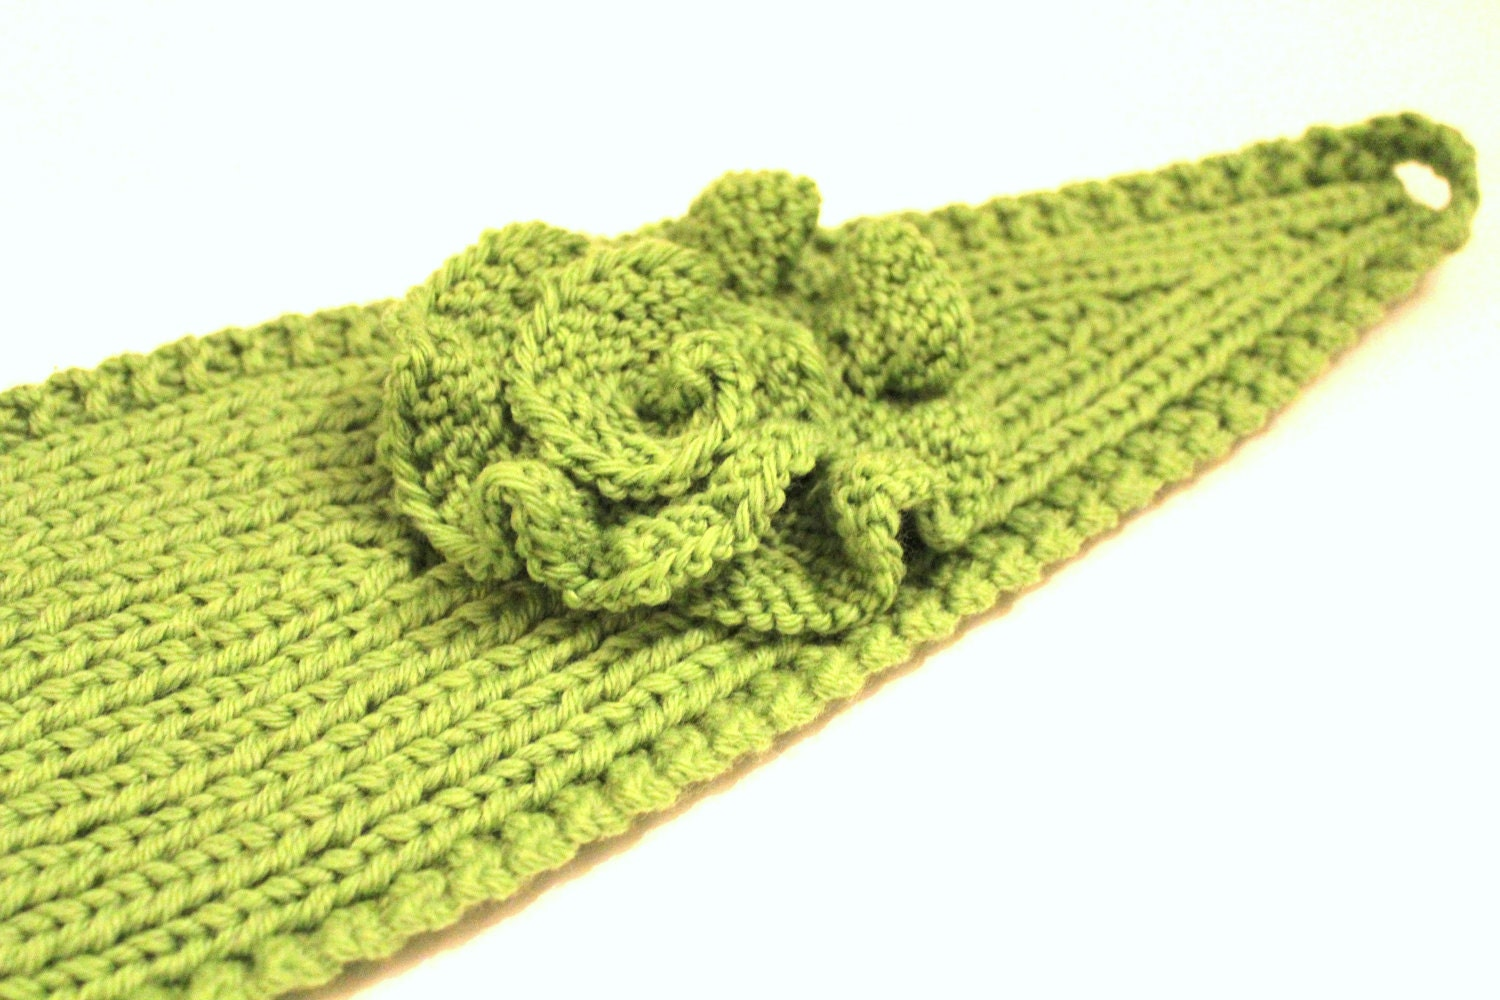 Knitting Pattern For A Headband With Flower : KNITTING PATTERN Knitting Pattern Headband with Crochet Or